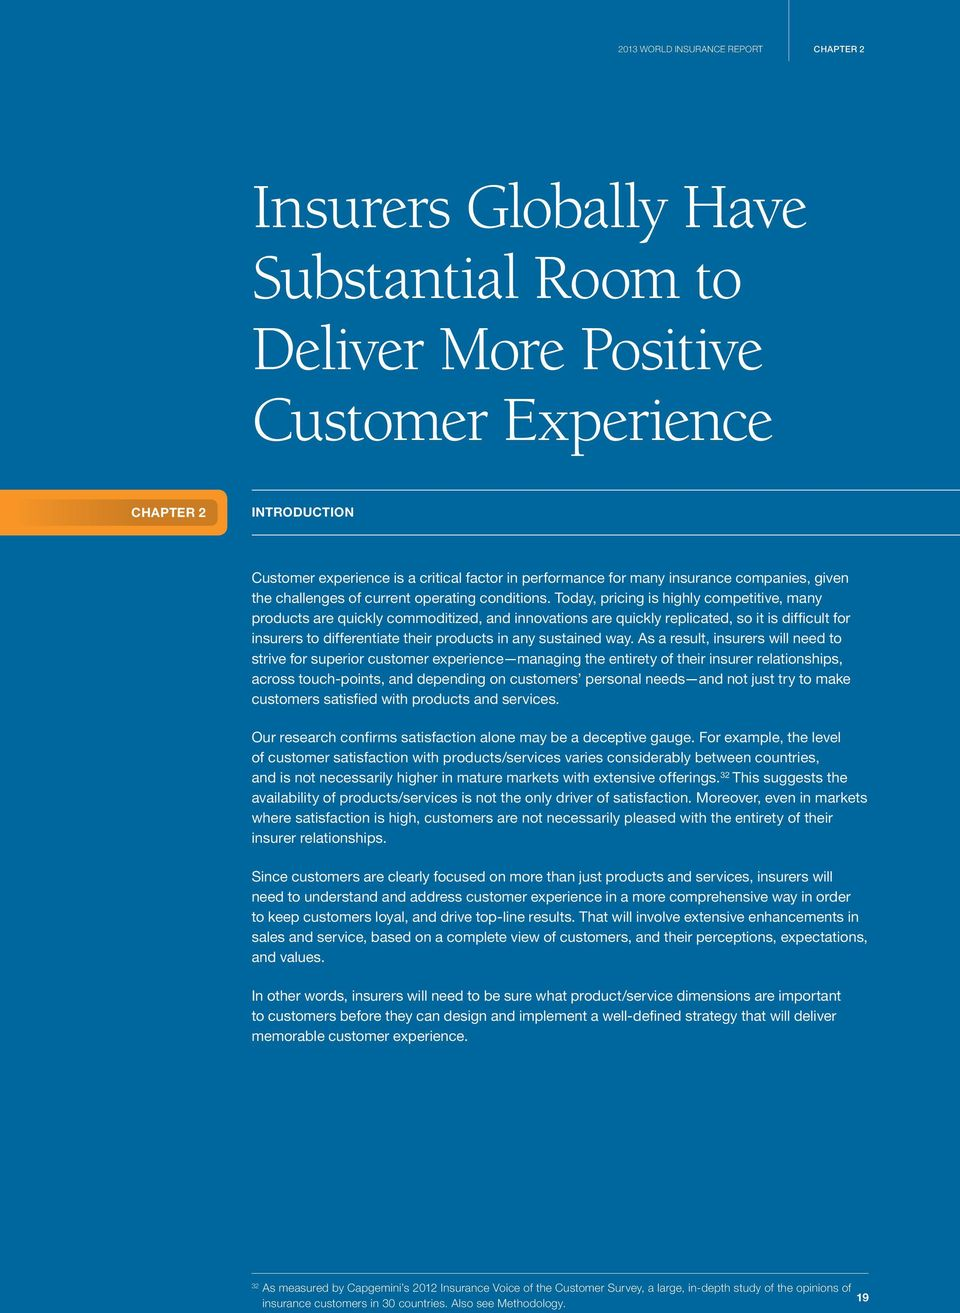 Today, pricing is highly competitive, many products are quickly commoditized, and innovations are quickly replicated, so it is difficult for insurers to differentiate their products in any sustained